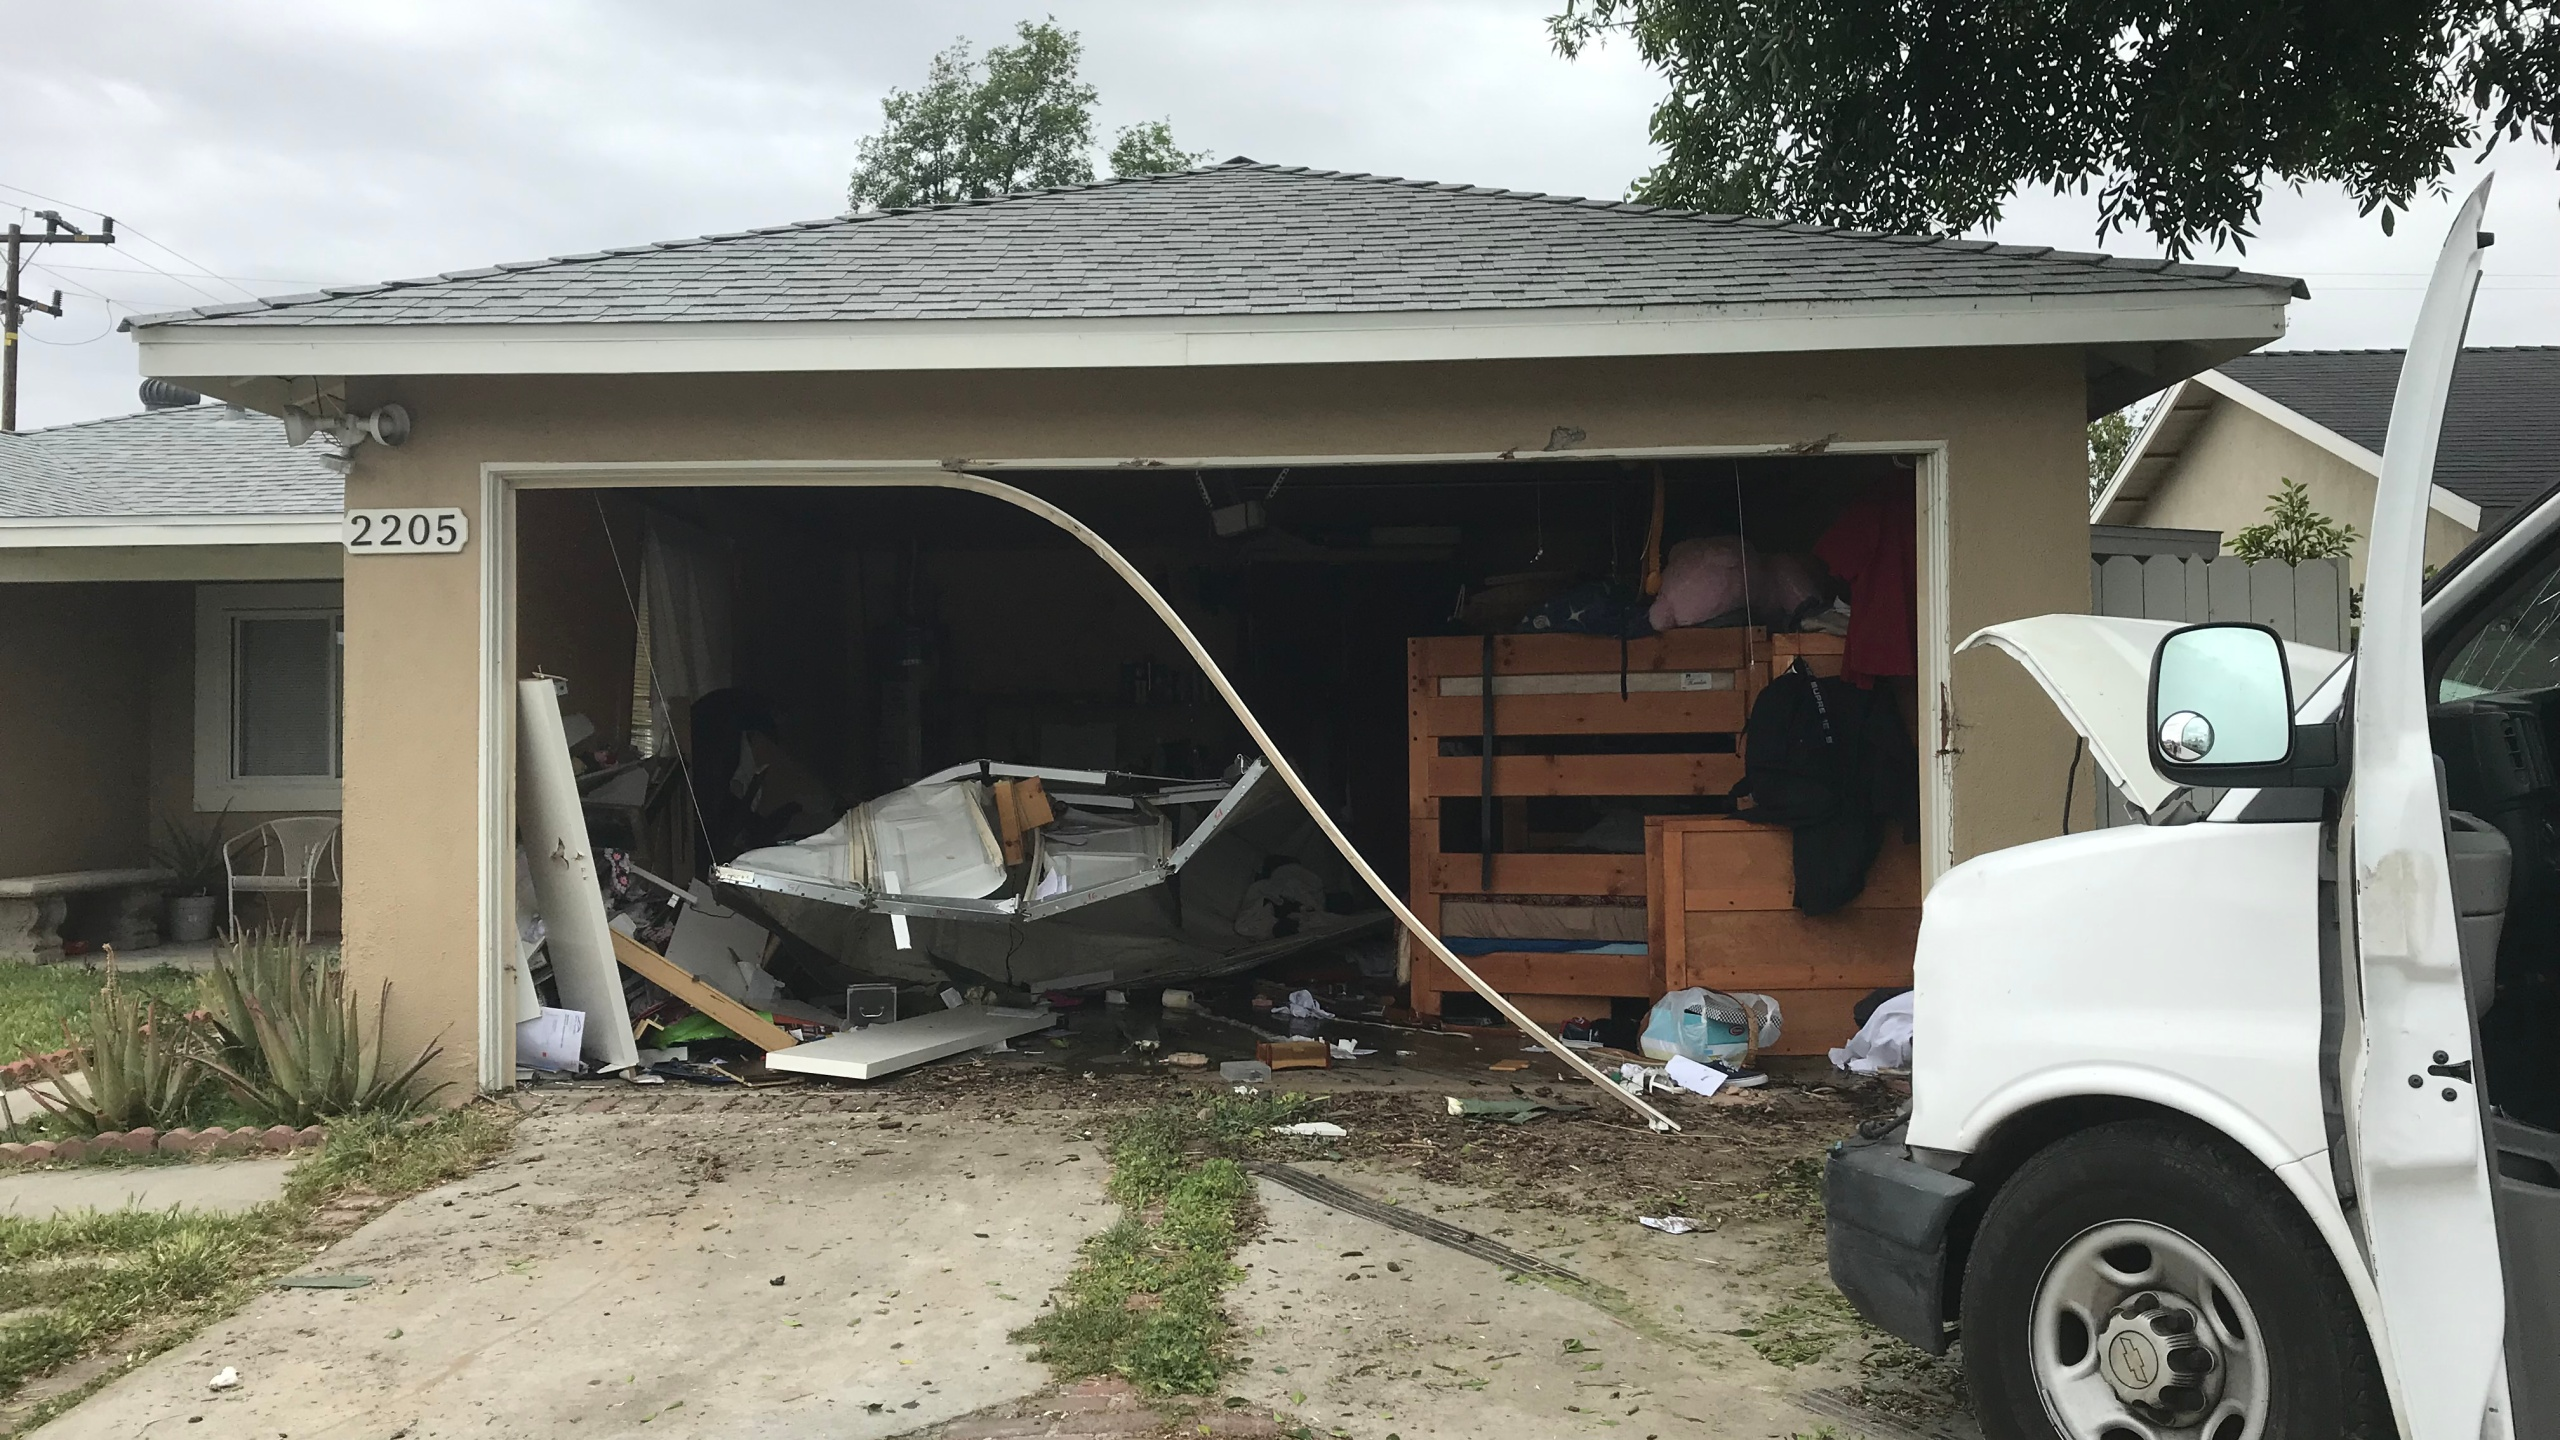 The garage of a Simi Valley home is seen after a suspected intoxicated driver crashed into it on April 30, 2019, in a photo released by the Simi Valley Police Department.